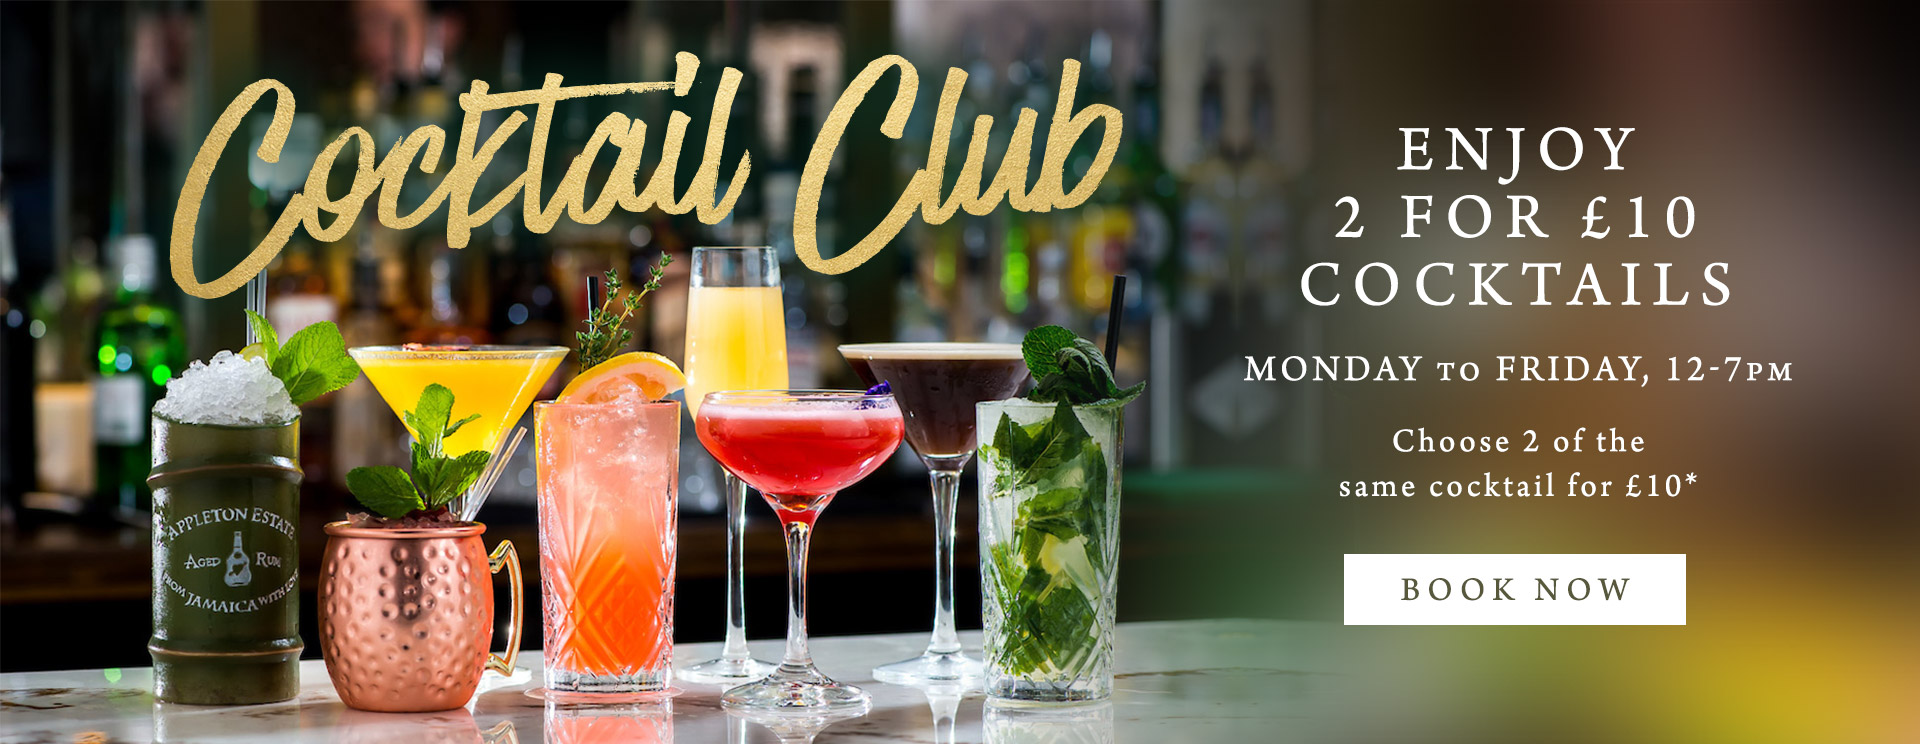 2 for £10 cocktails at The Bell Inn